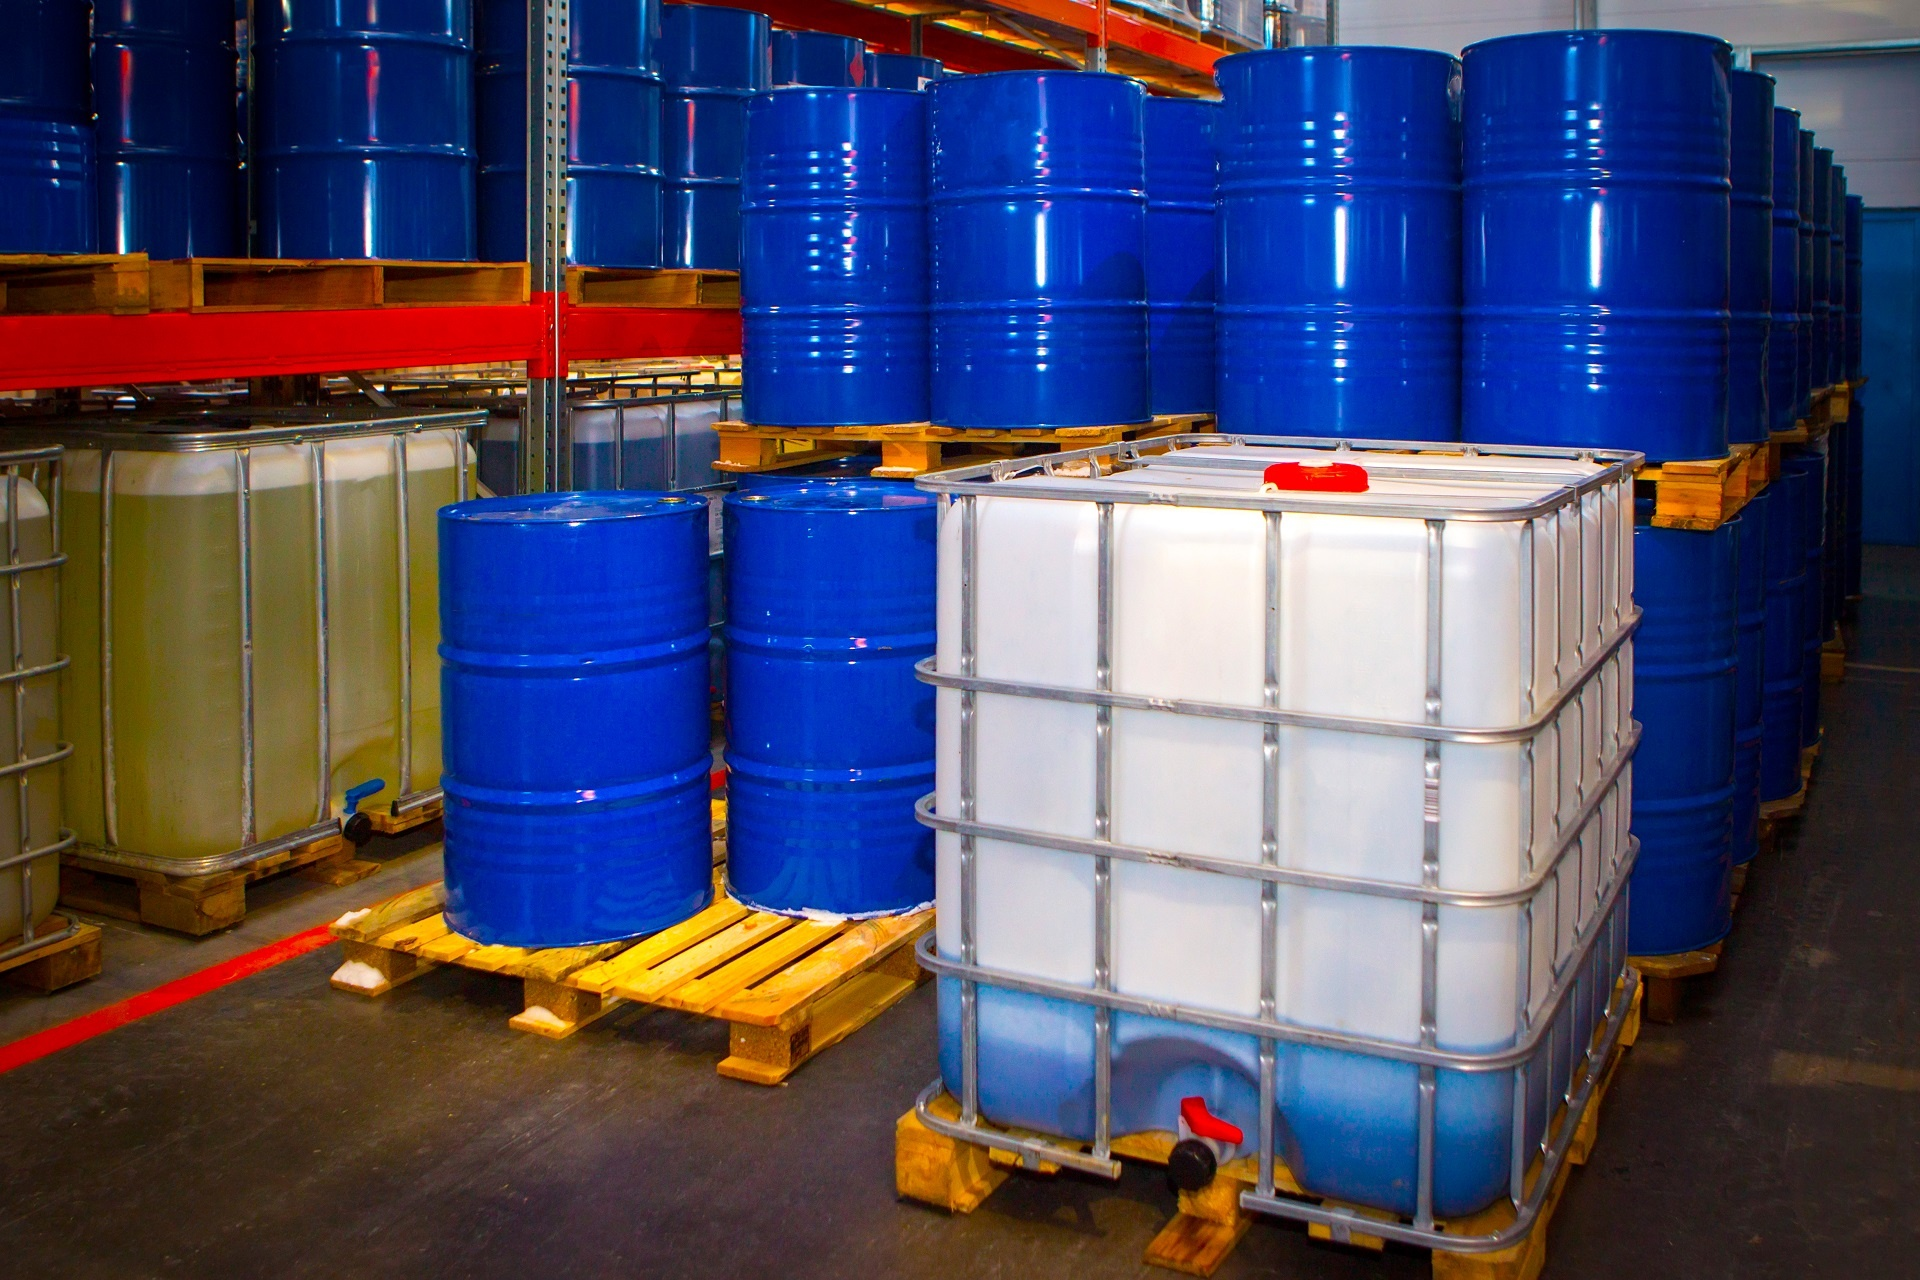 Storage of flammable solvents in the workplace